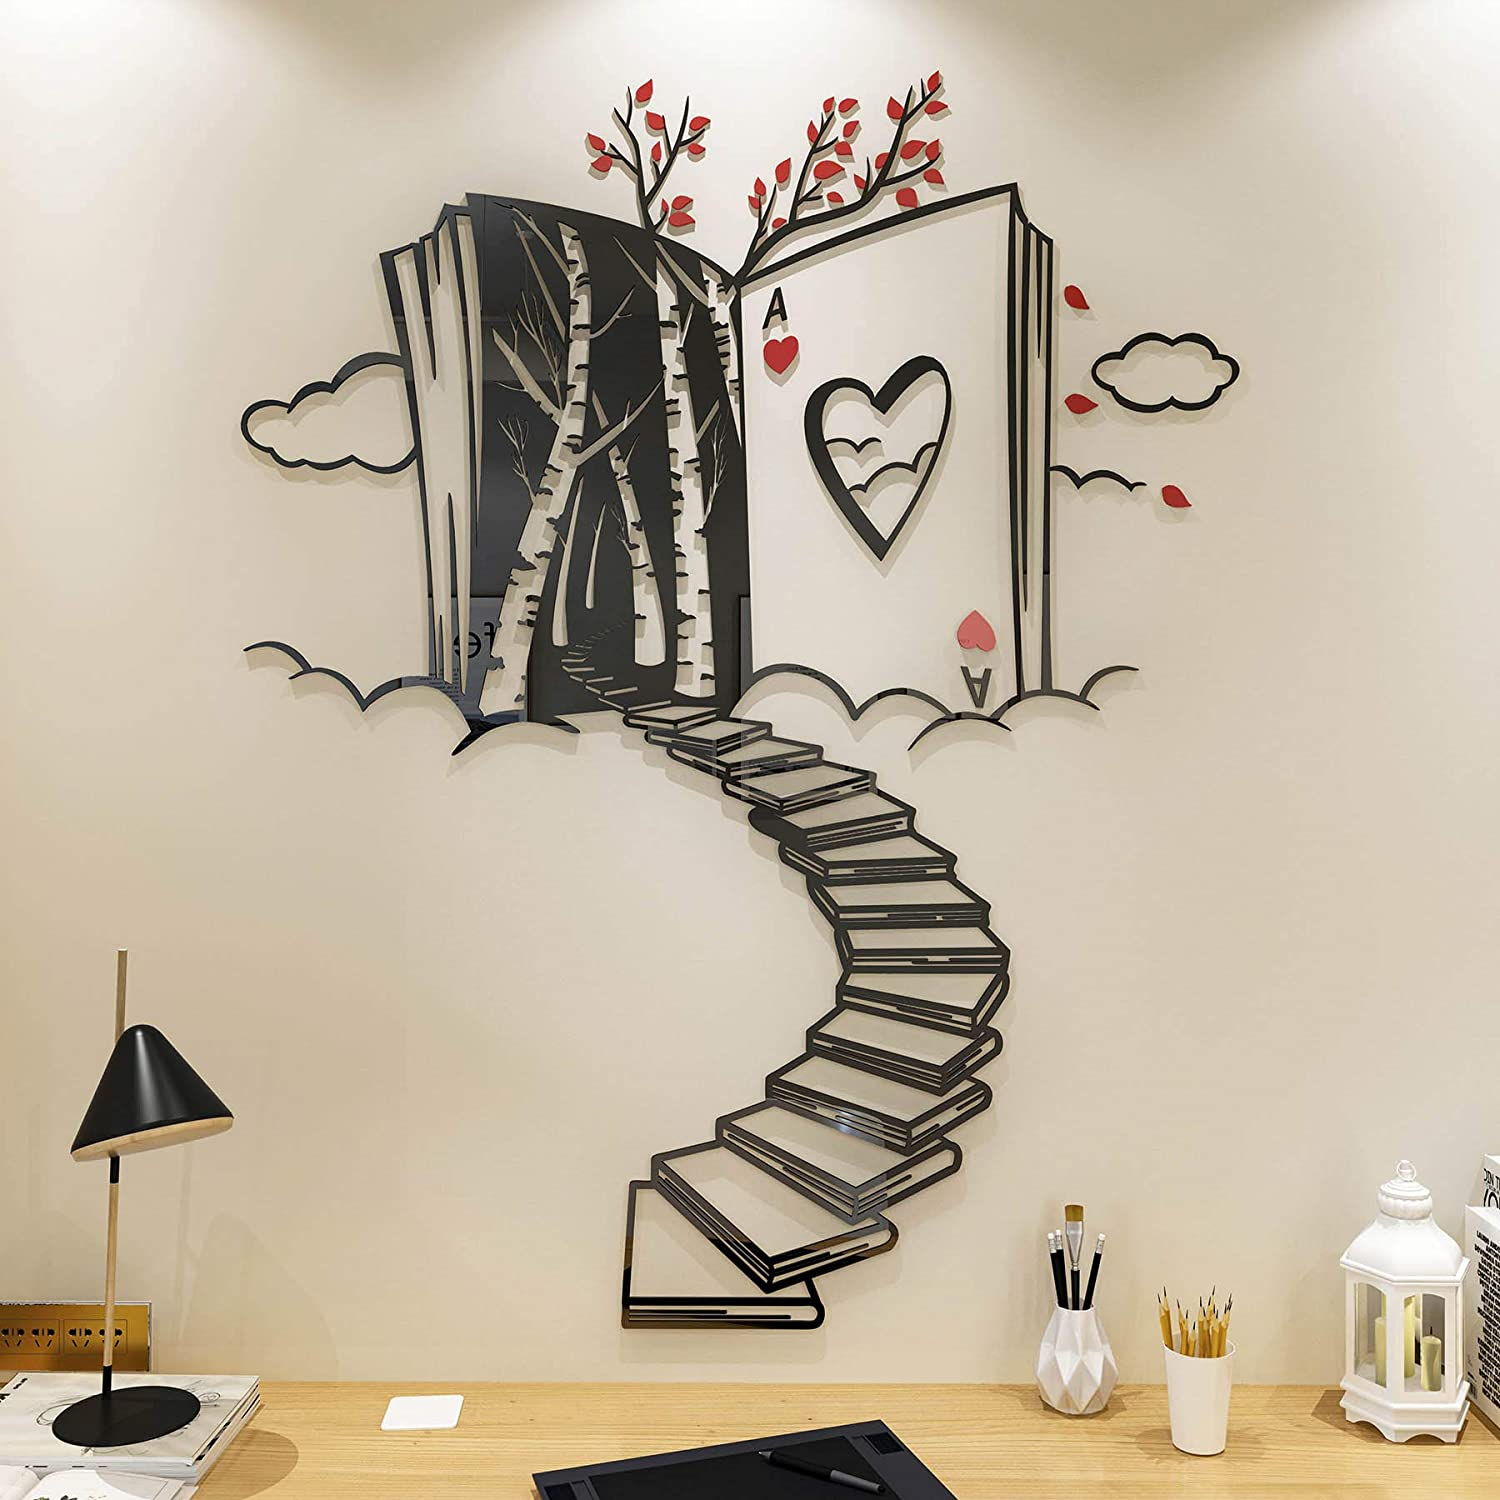 DecorSmart Alice in Wonderland Decorations Wall Decor for Bedroom with Stairs of Books, Trees and Ace of Hearts, Mad Hatters Tea Party Removable DIY Acrylic Wall Stickers Decorations